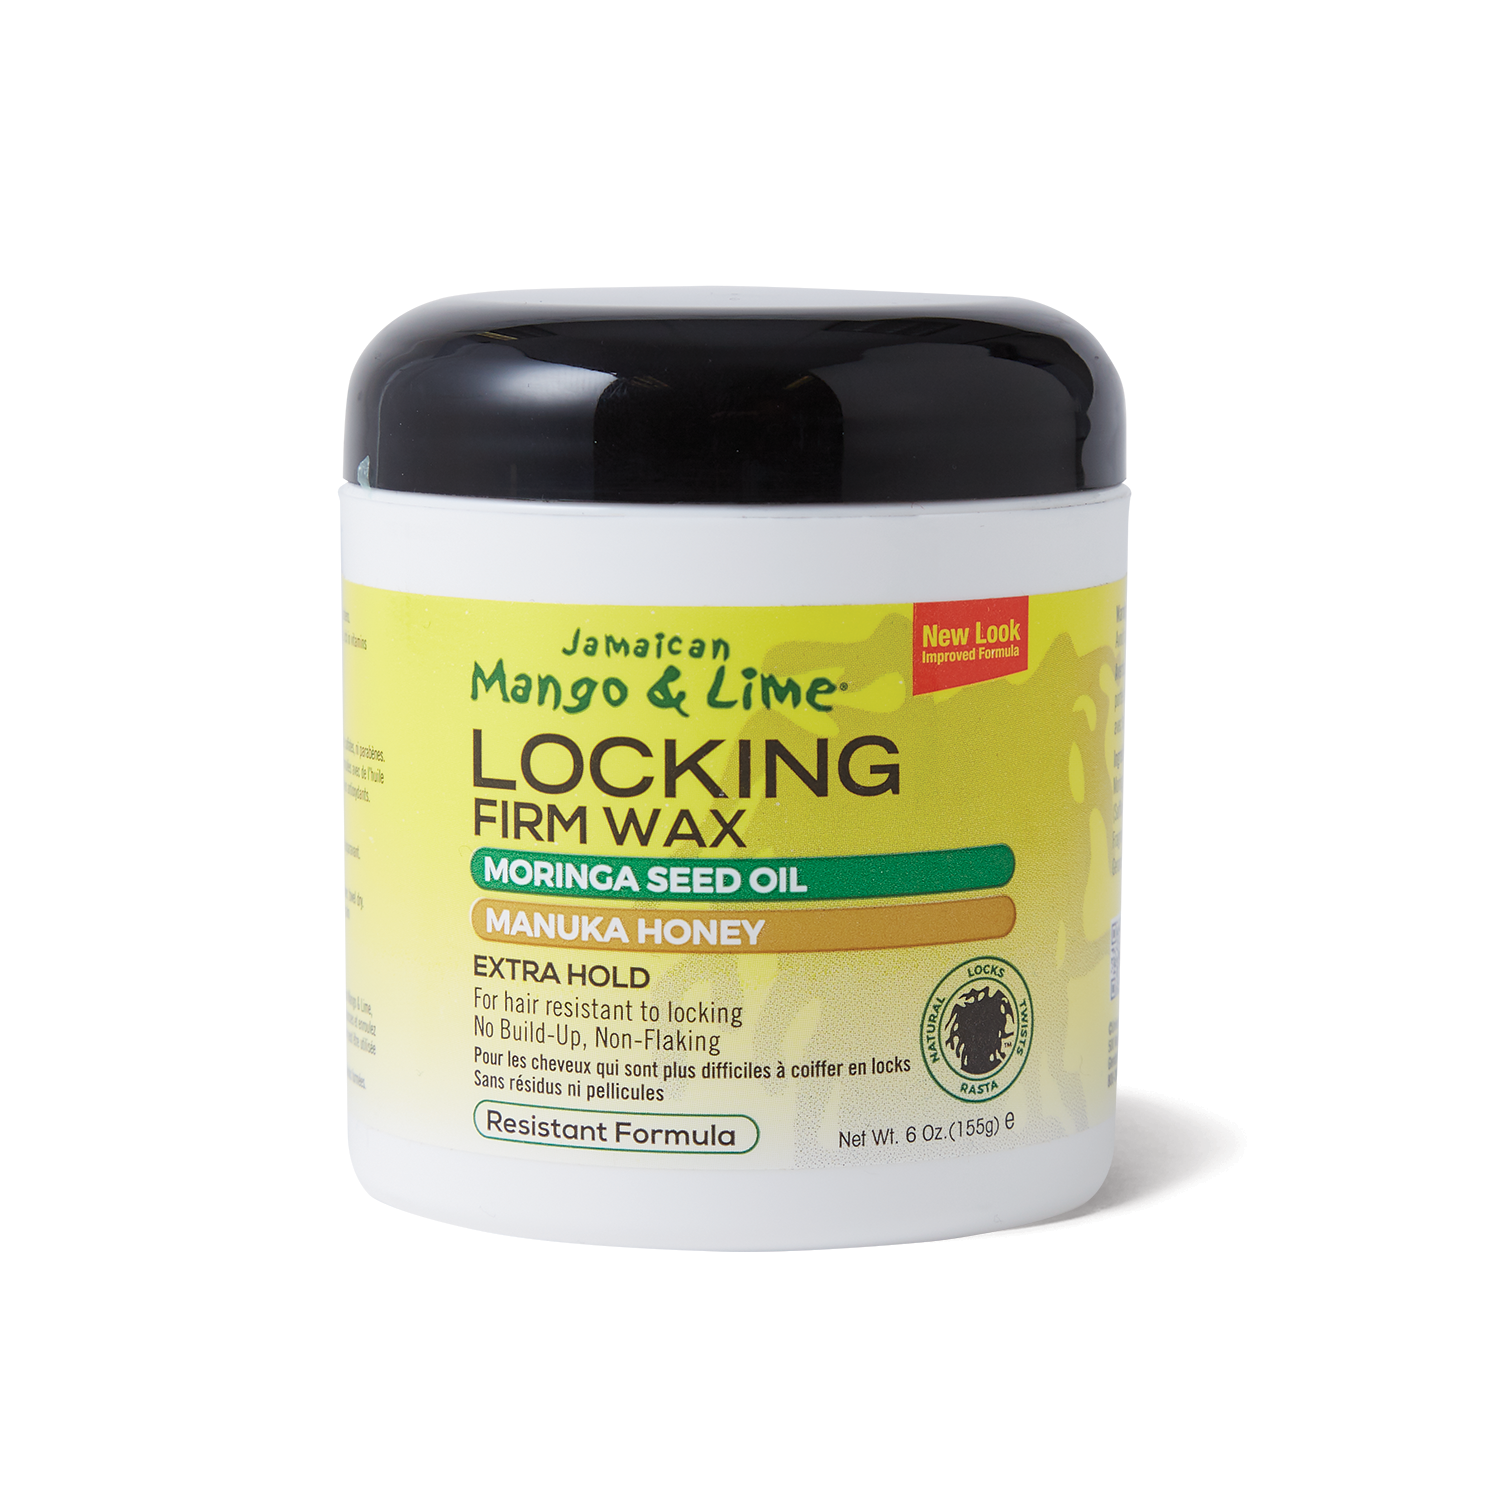 Sally Beauty coupon: Locking Firm Wax